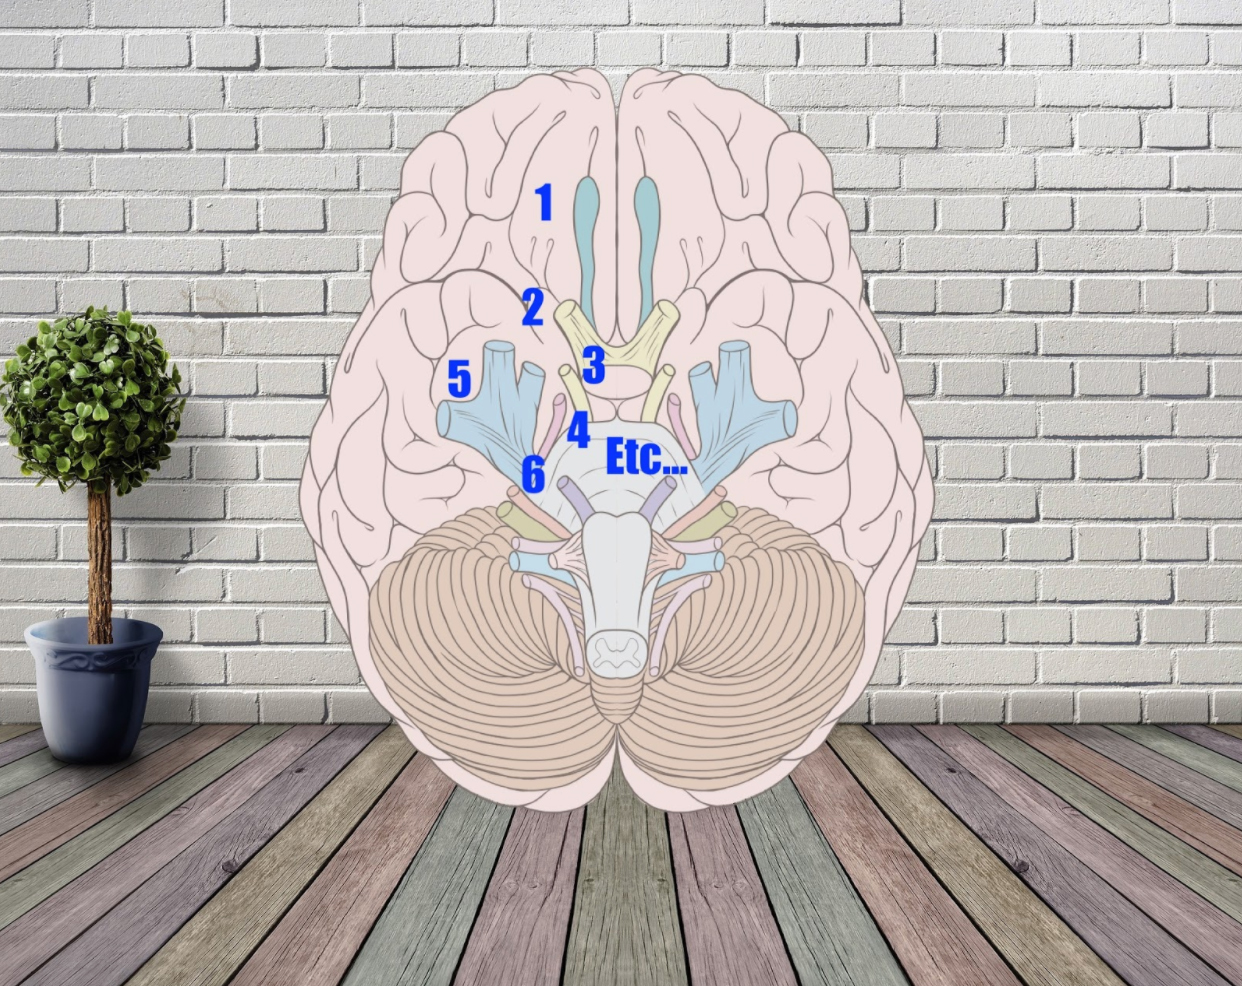 cranial nerves in a brain memory palace